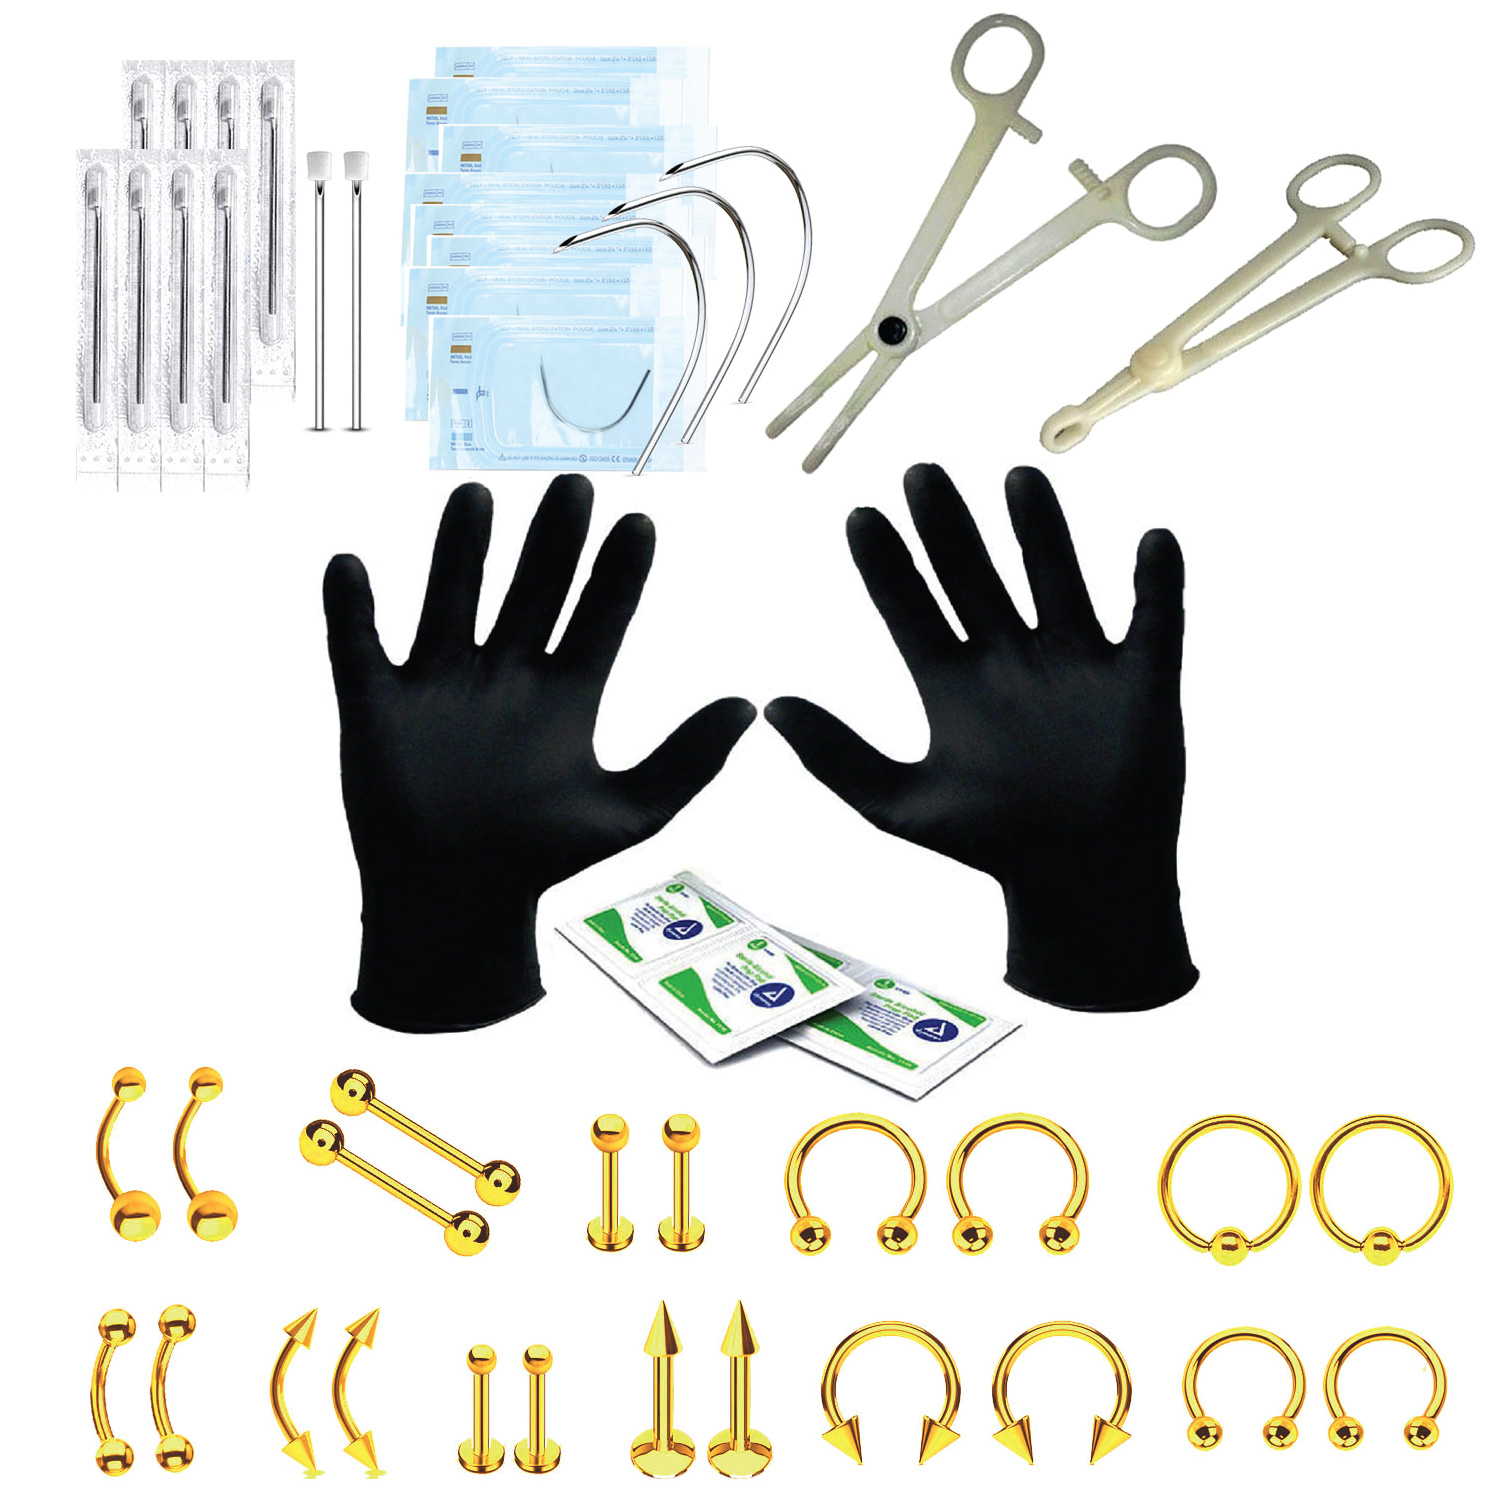 BodyJ4You 46PC Professional Piercing Kit 14G 16G Goldtone Steel Belly Ring Tongue Tragus Nipple Lip